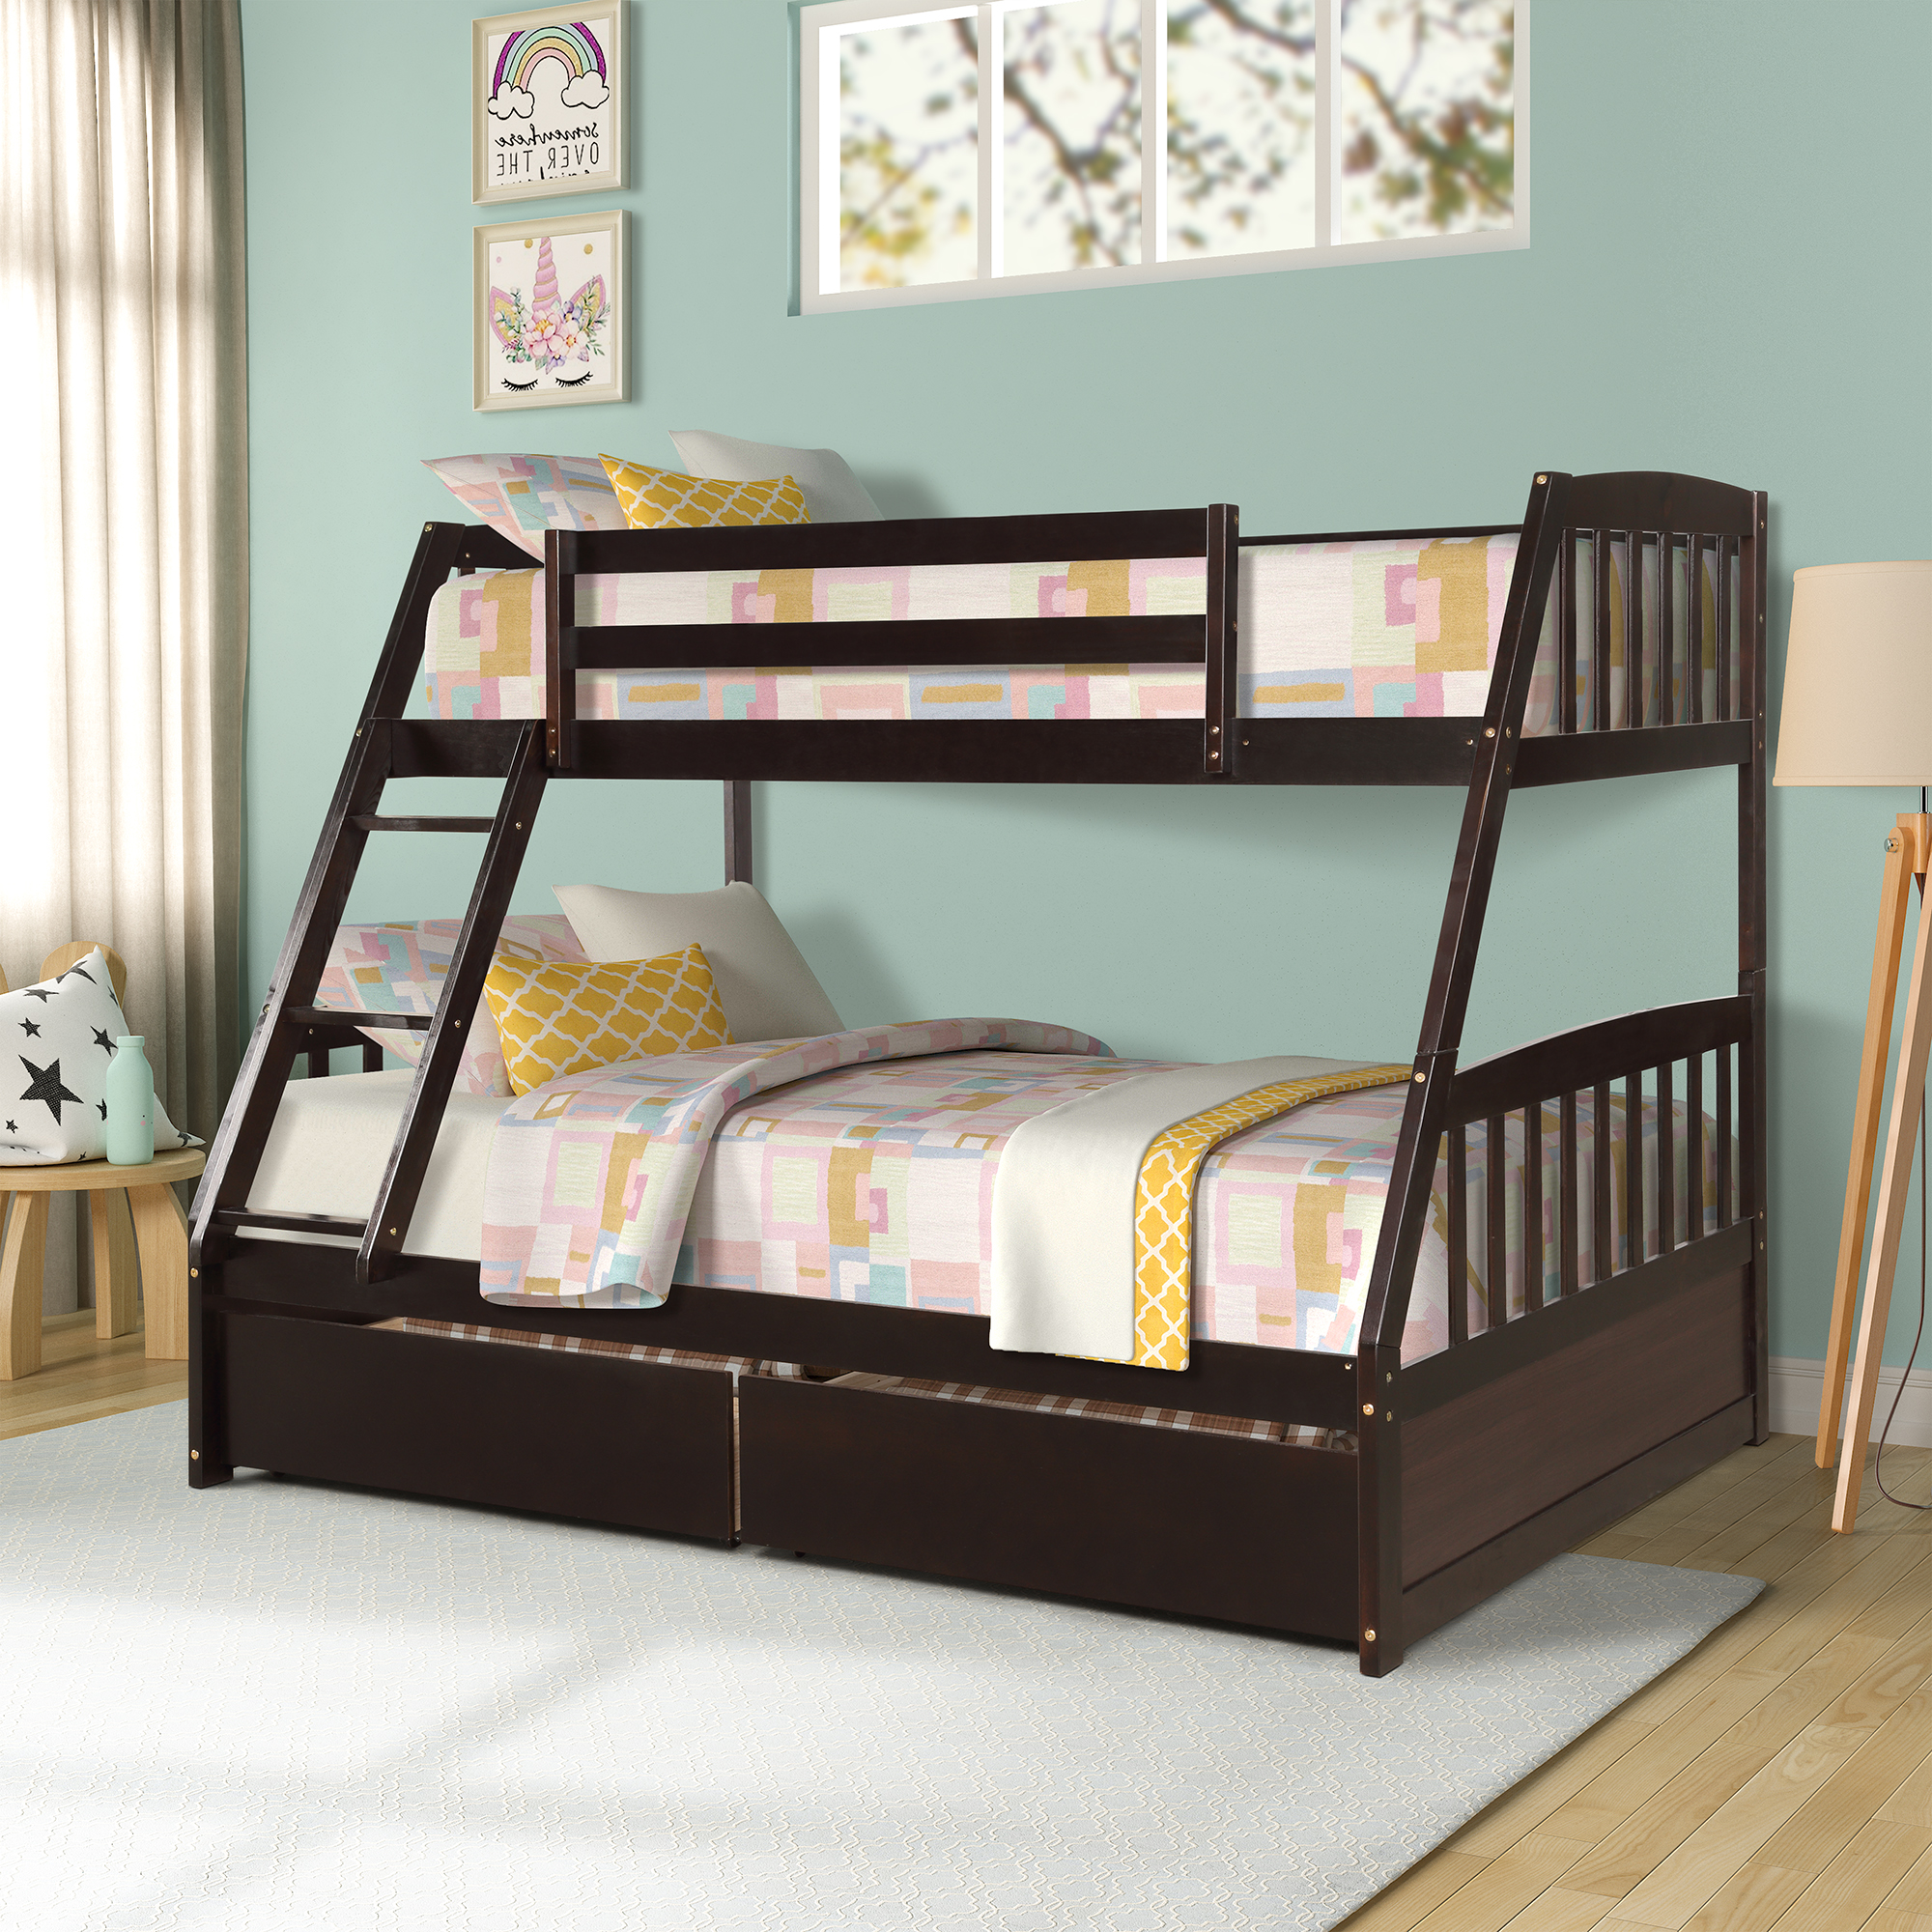 Picture of: Bedroom Furniture Bed Solid Wood Twin Over Full Bunk Bed With Two Storage Drawers White For Adults Child Bed Factory Price Sales